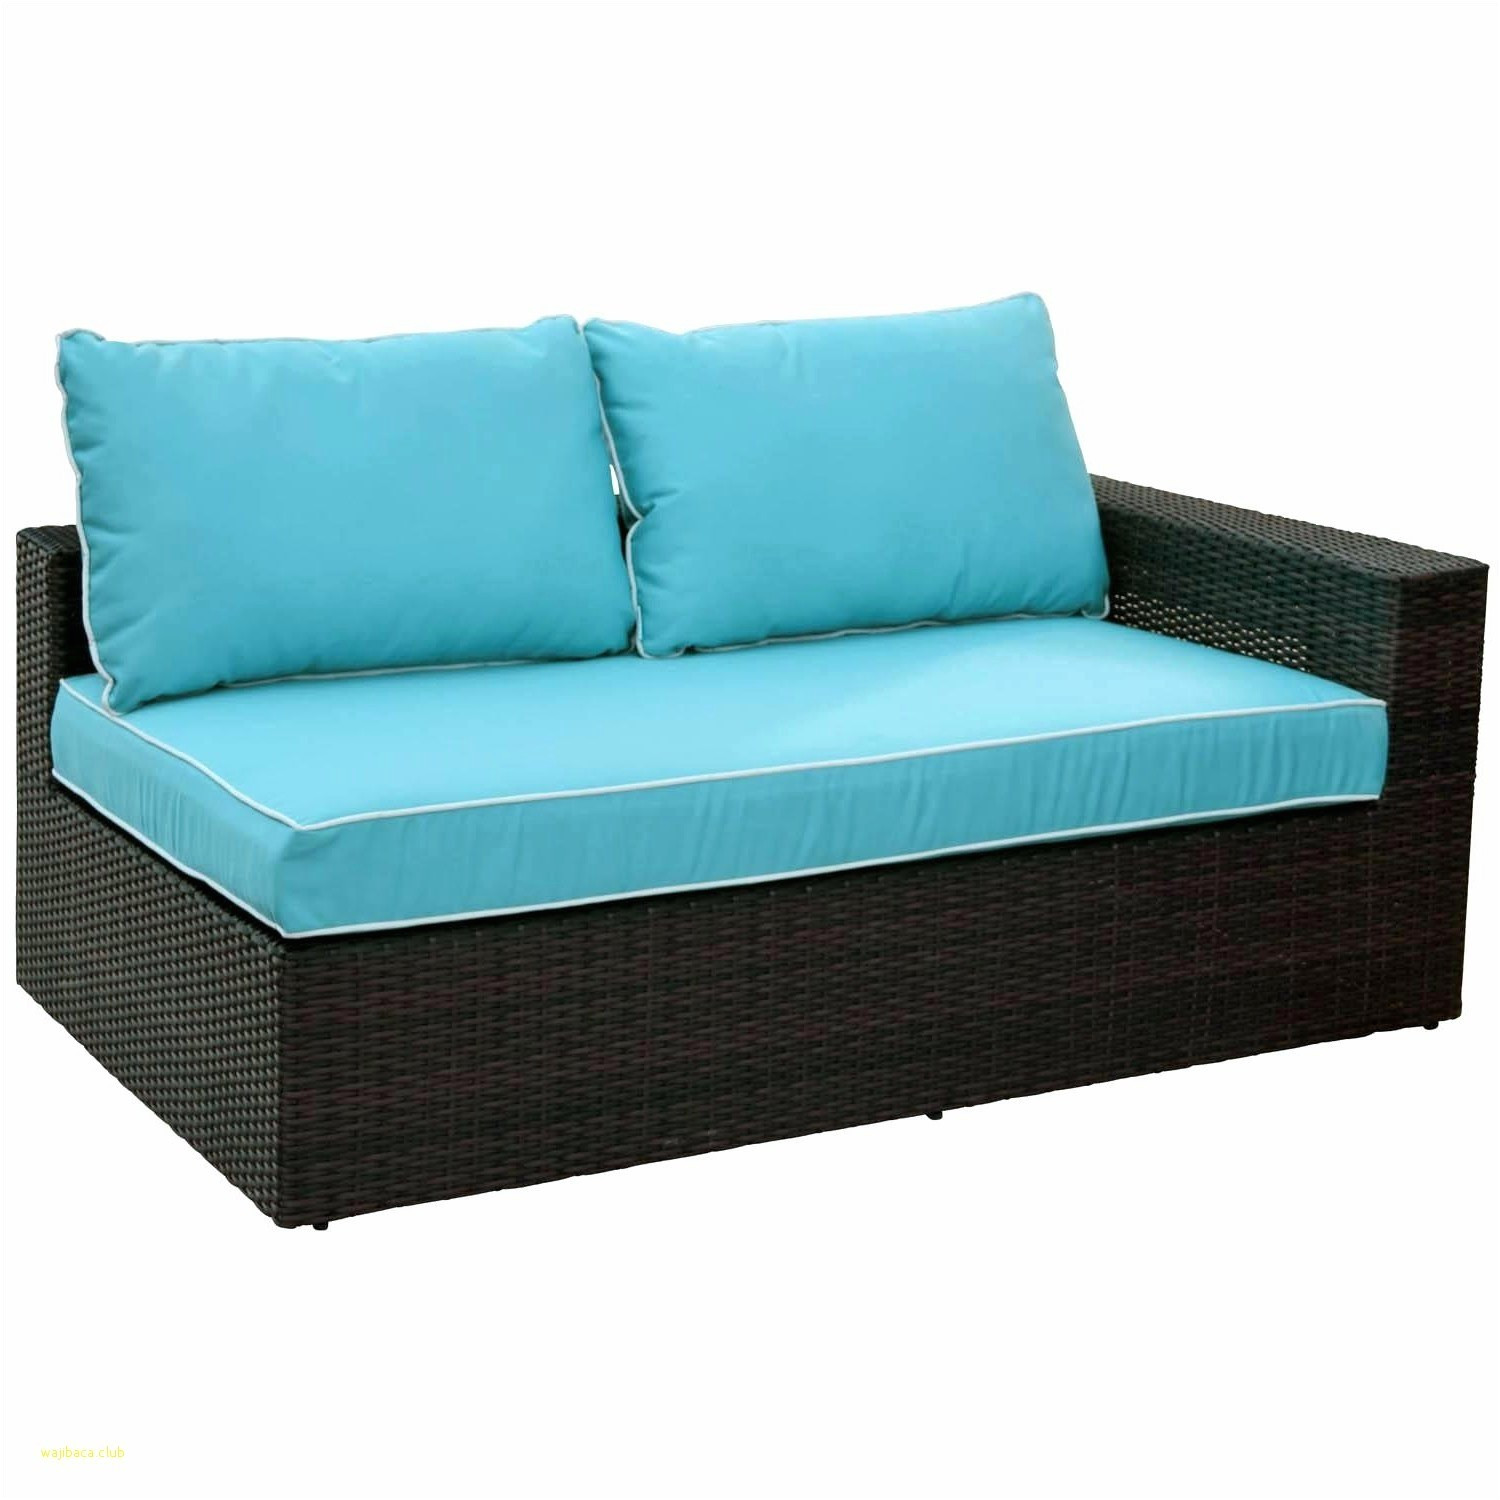 chaise lounge replacement slings meilleur de outdoor wicker chair cushions elegant tolle wicker outdoor sofa 0d